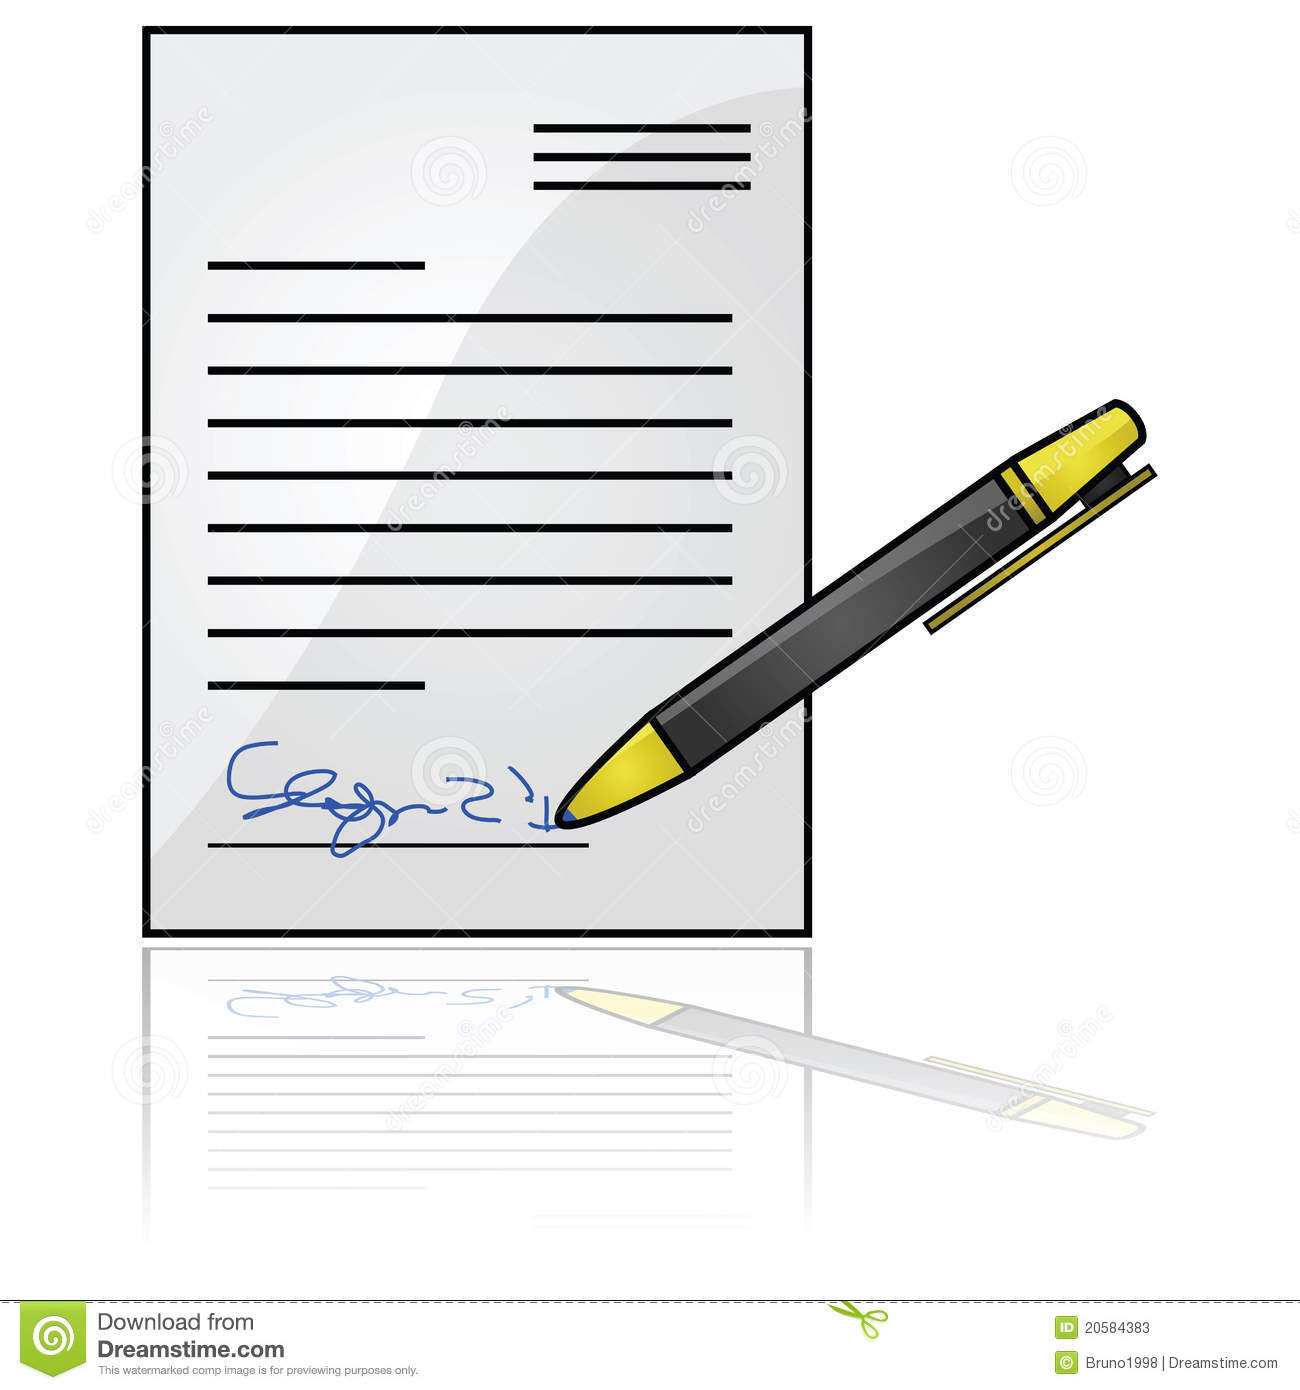 One who signs a document